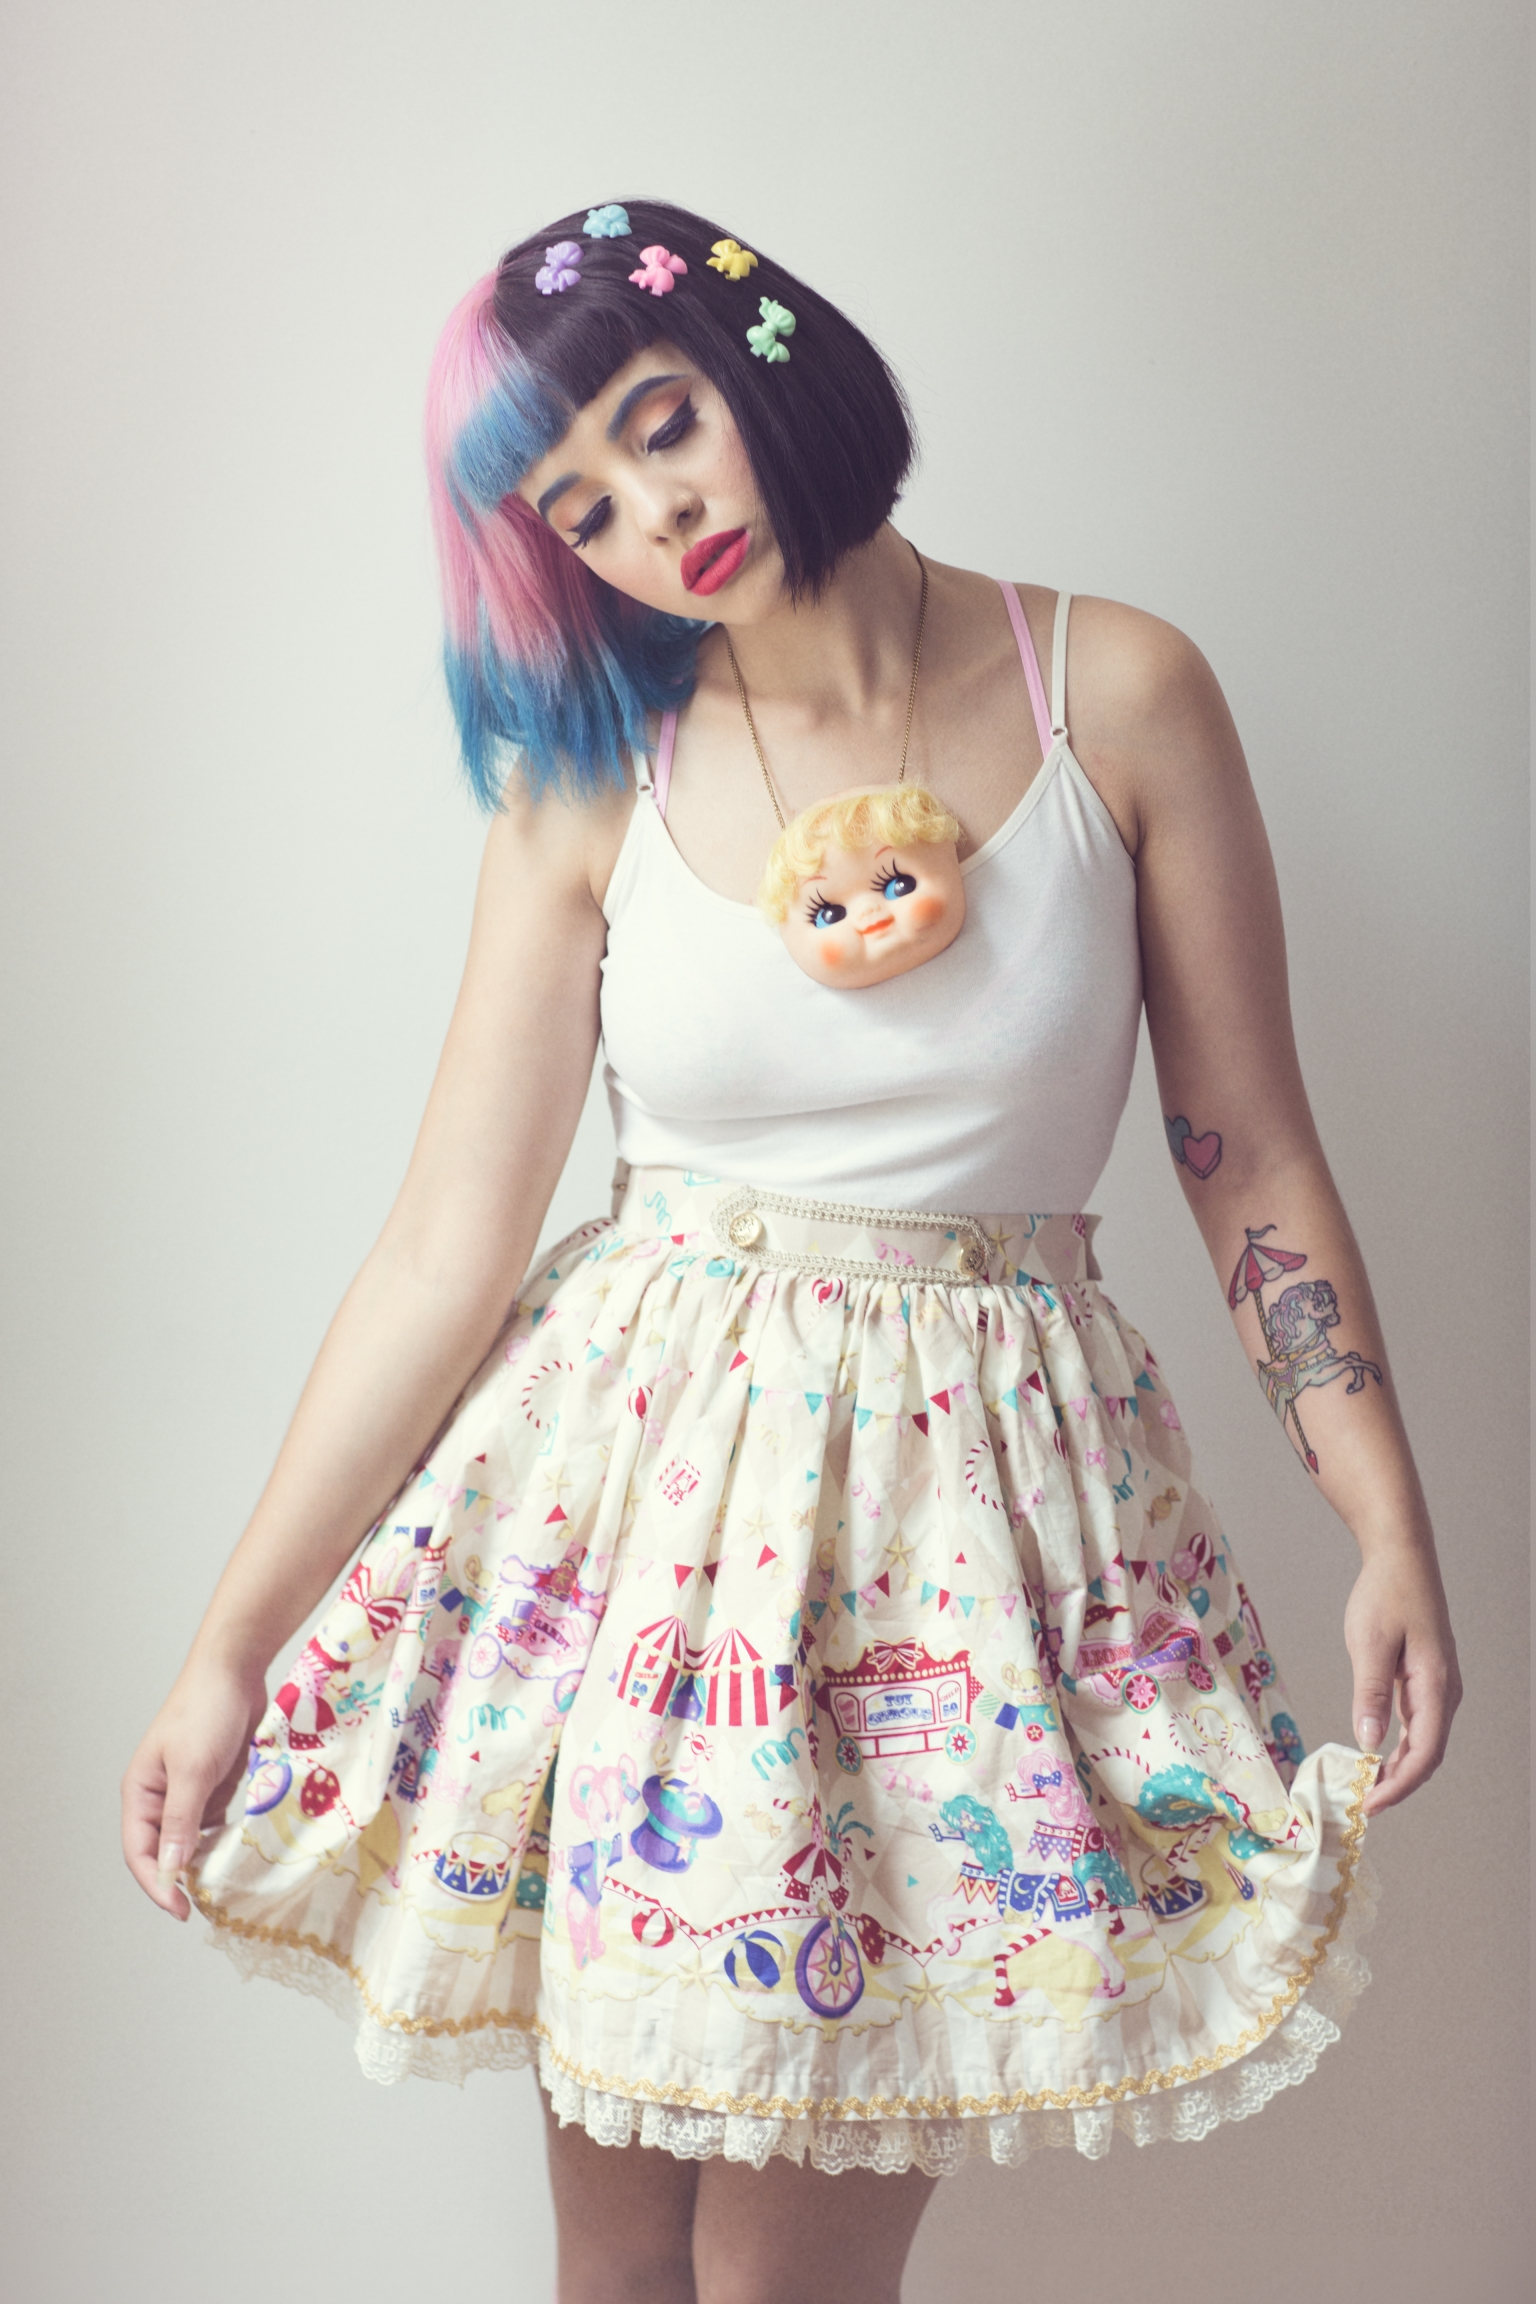 Melanie Martinez - Press Photo 2 - Credit Emily Soto